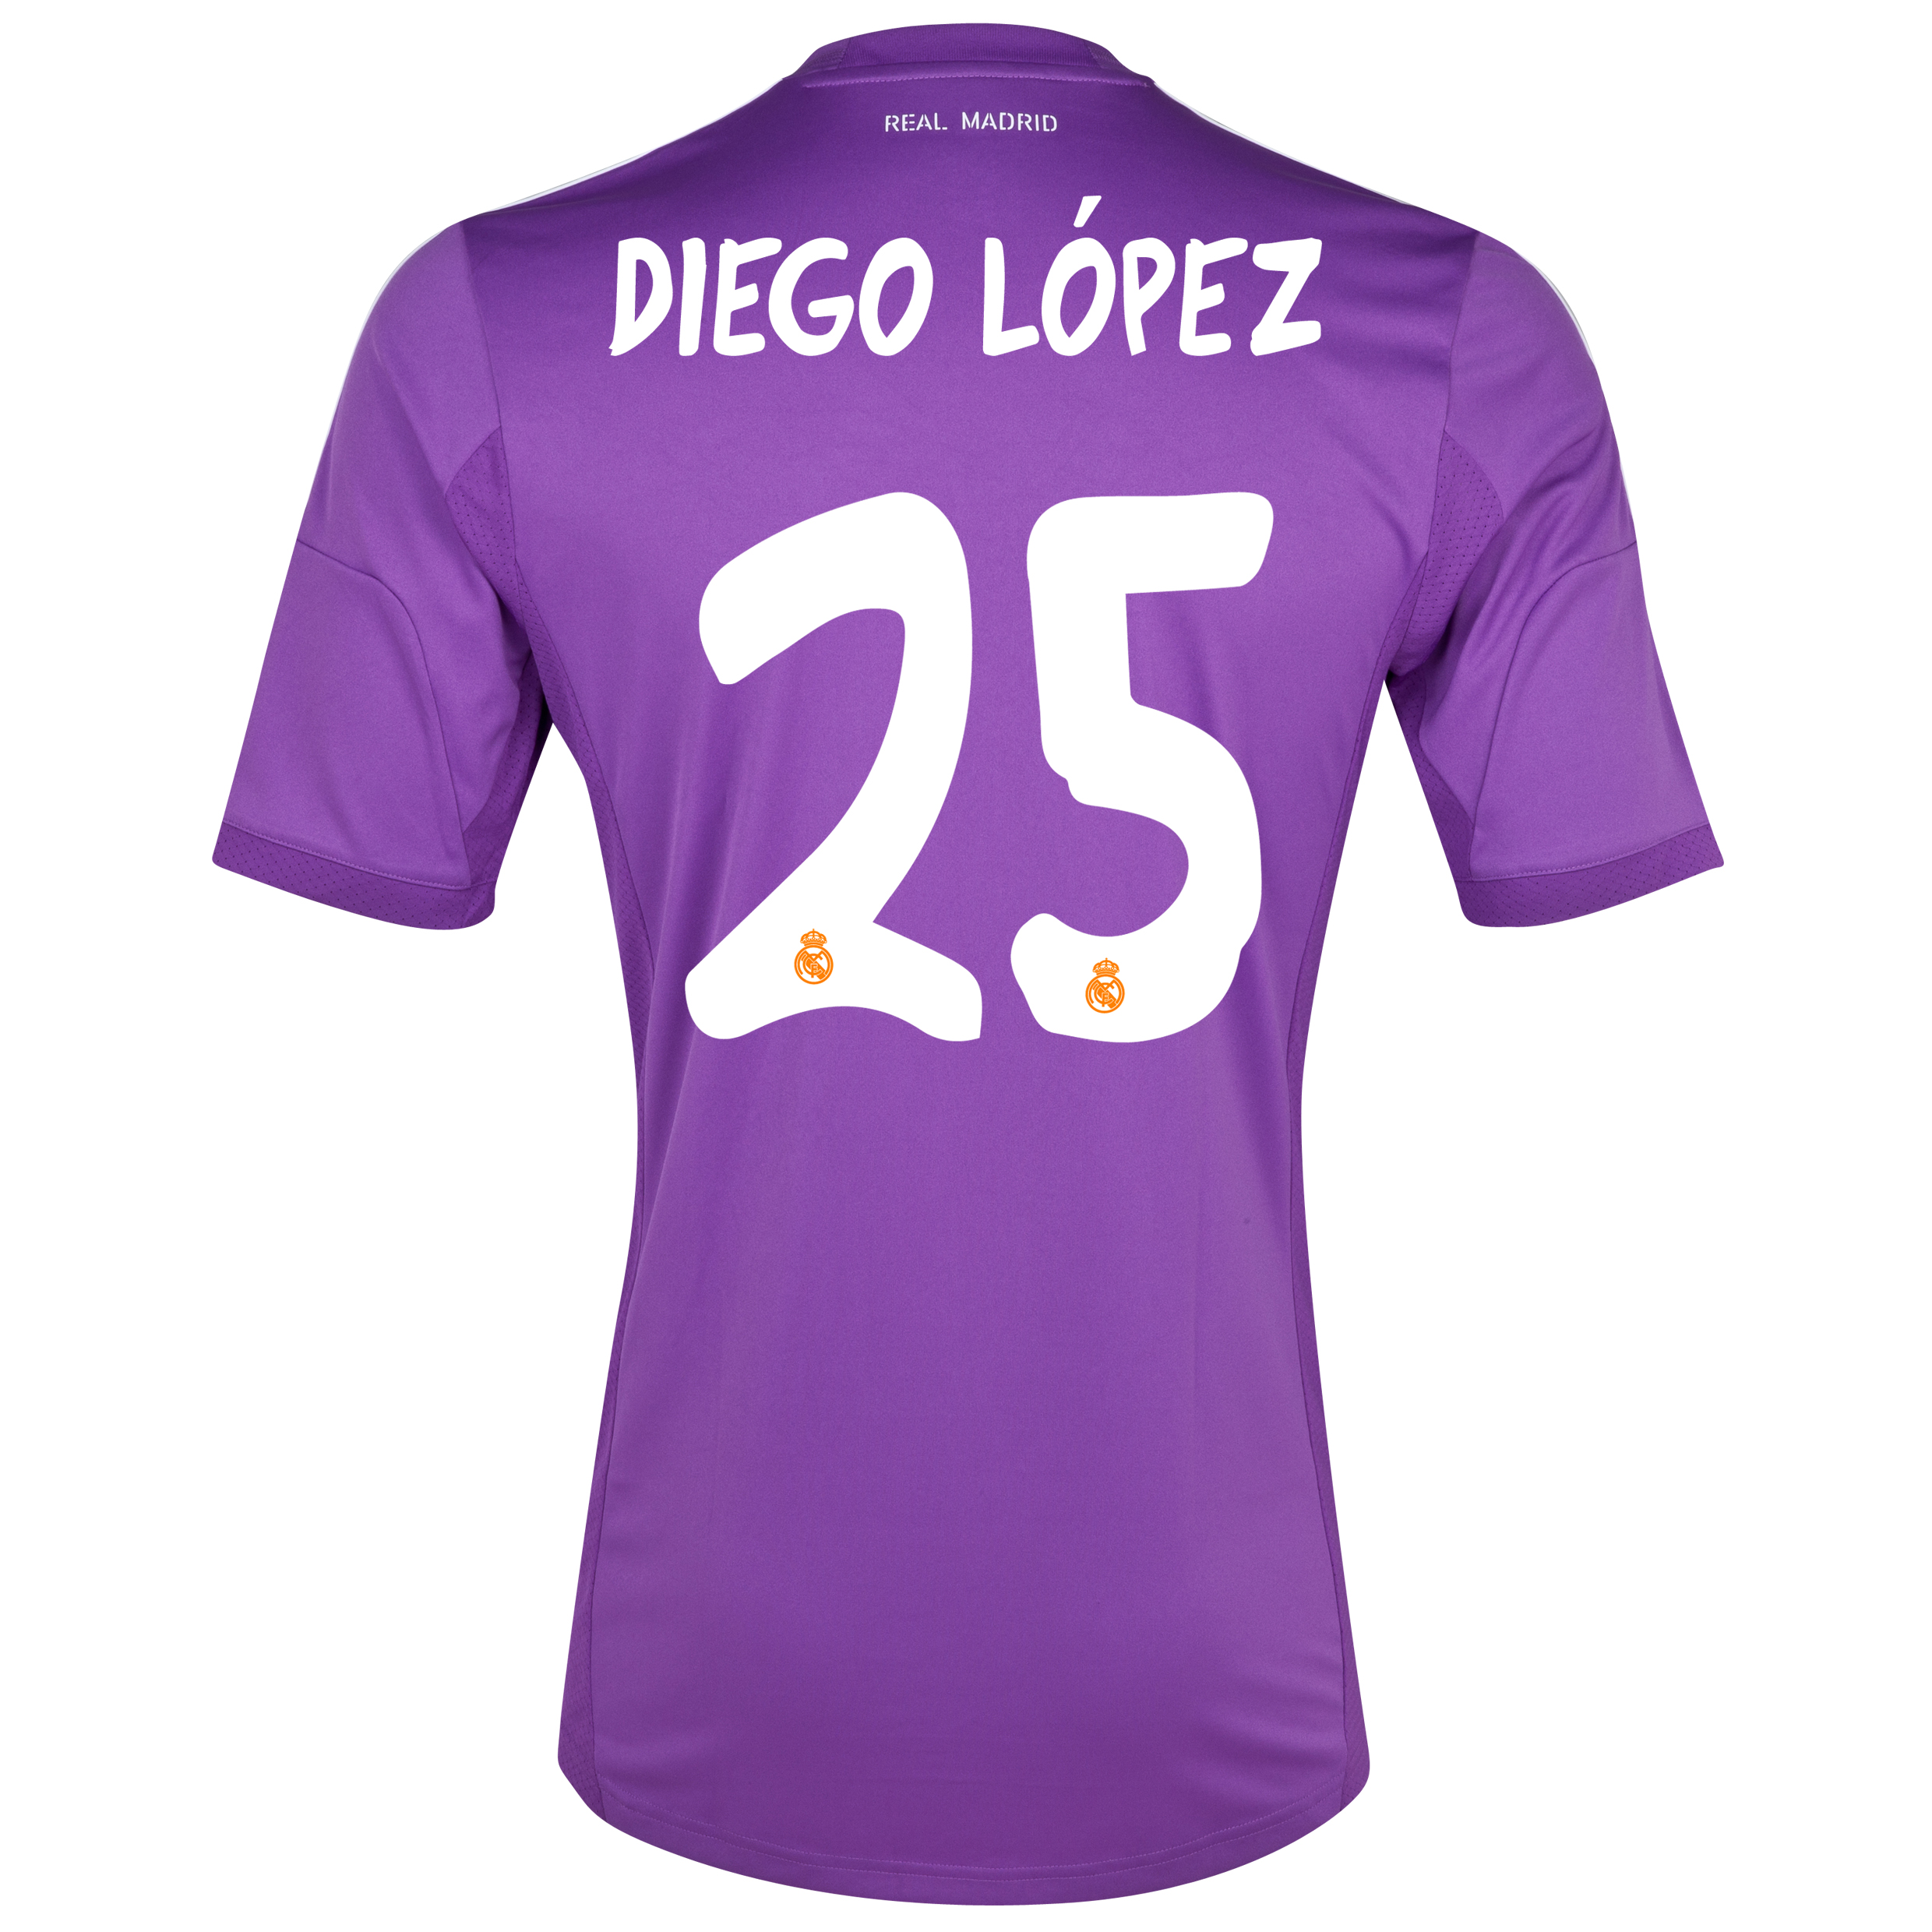 Real Madrid Home Goalkeeper Shirt 2013/14 with Diego Lopez 25 printing